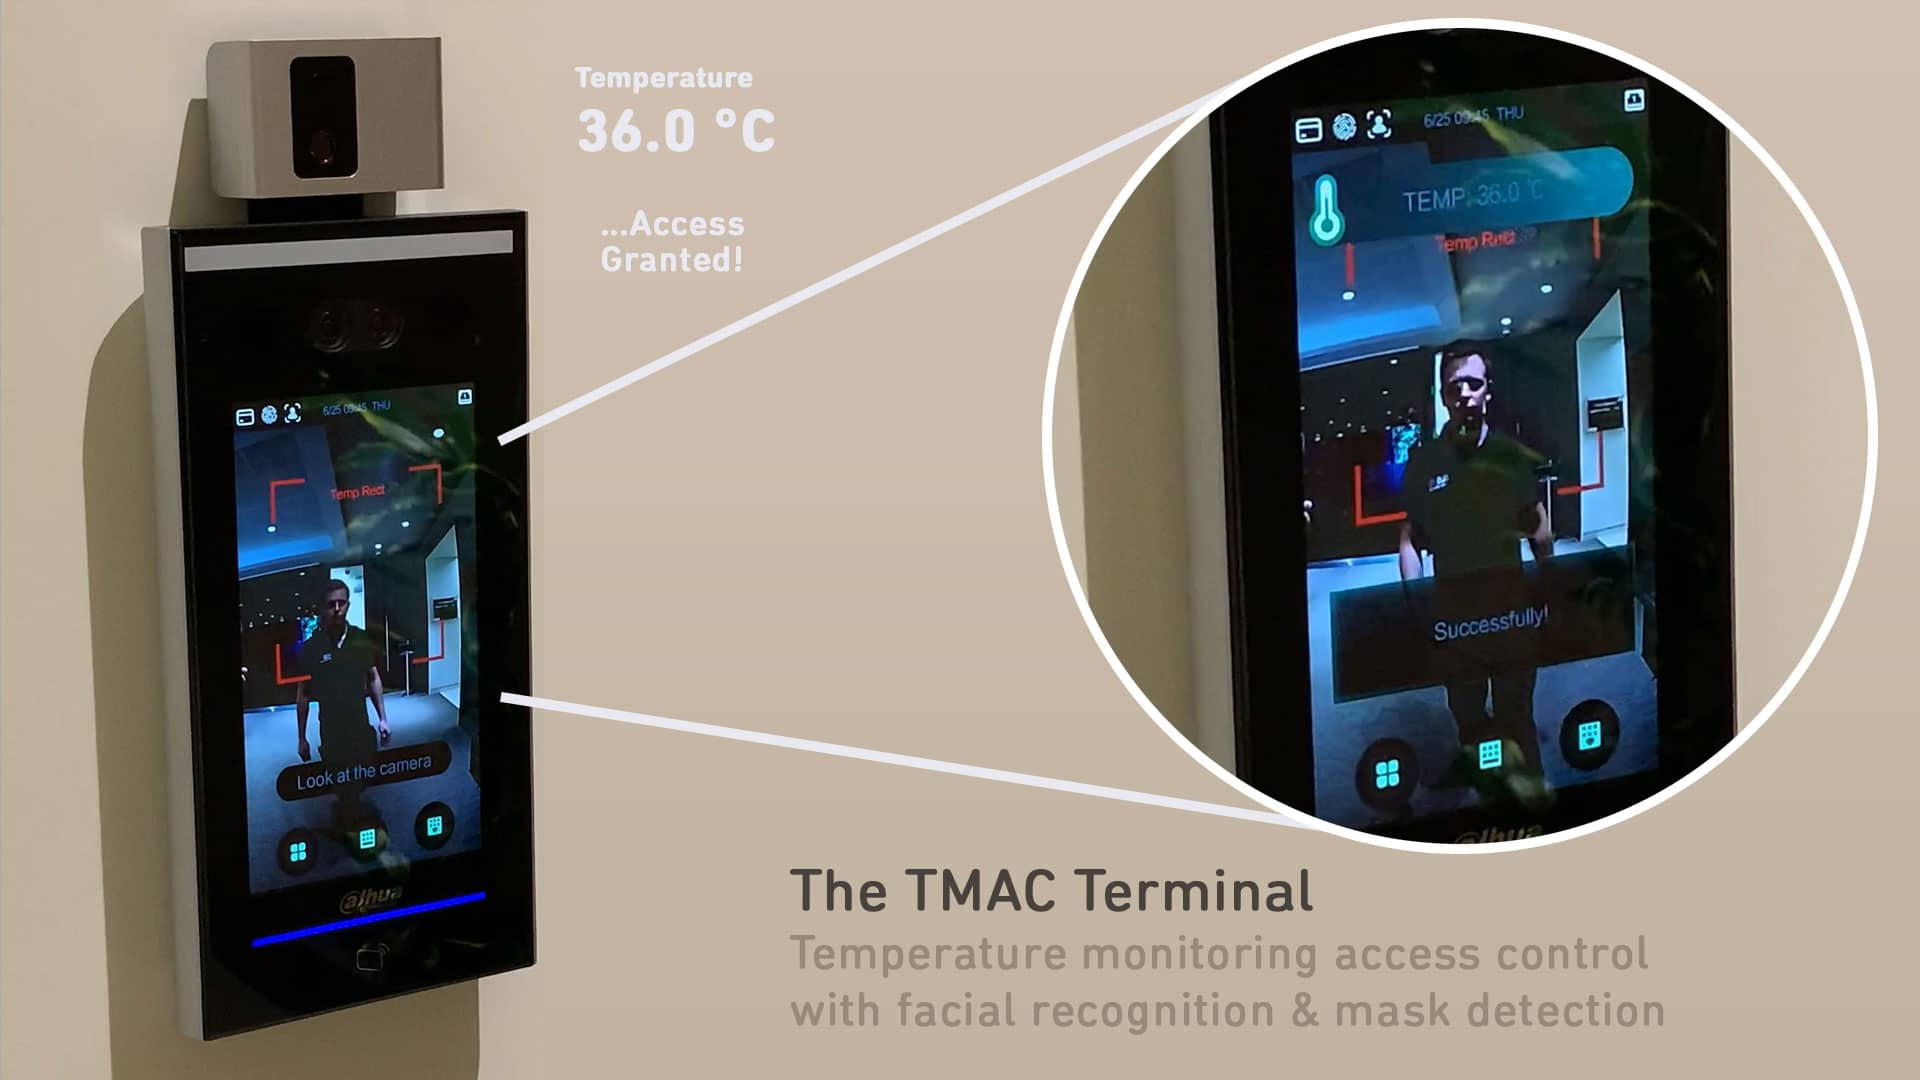 COVID access control terminal with automatic temperature monitoring.